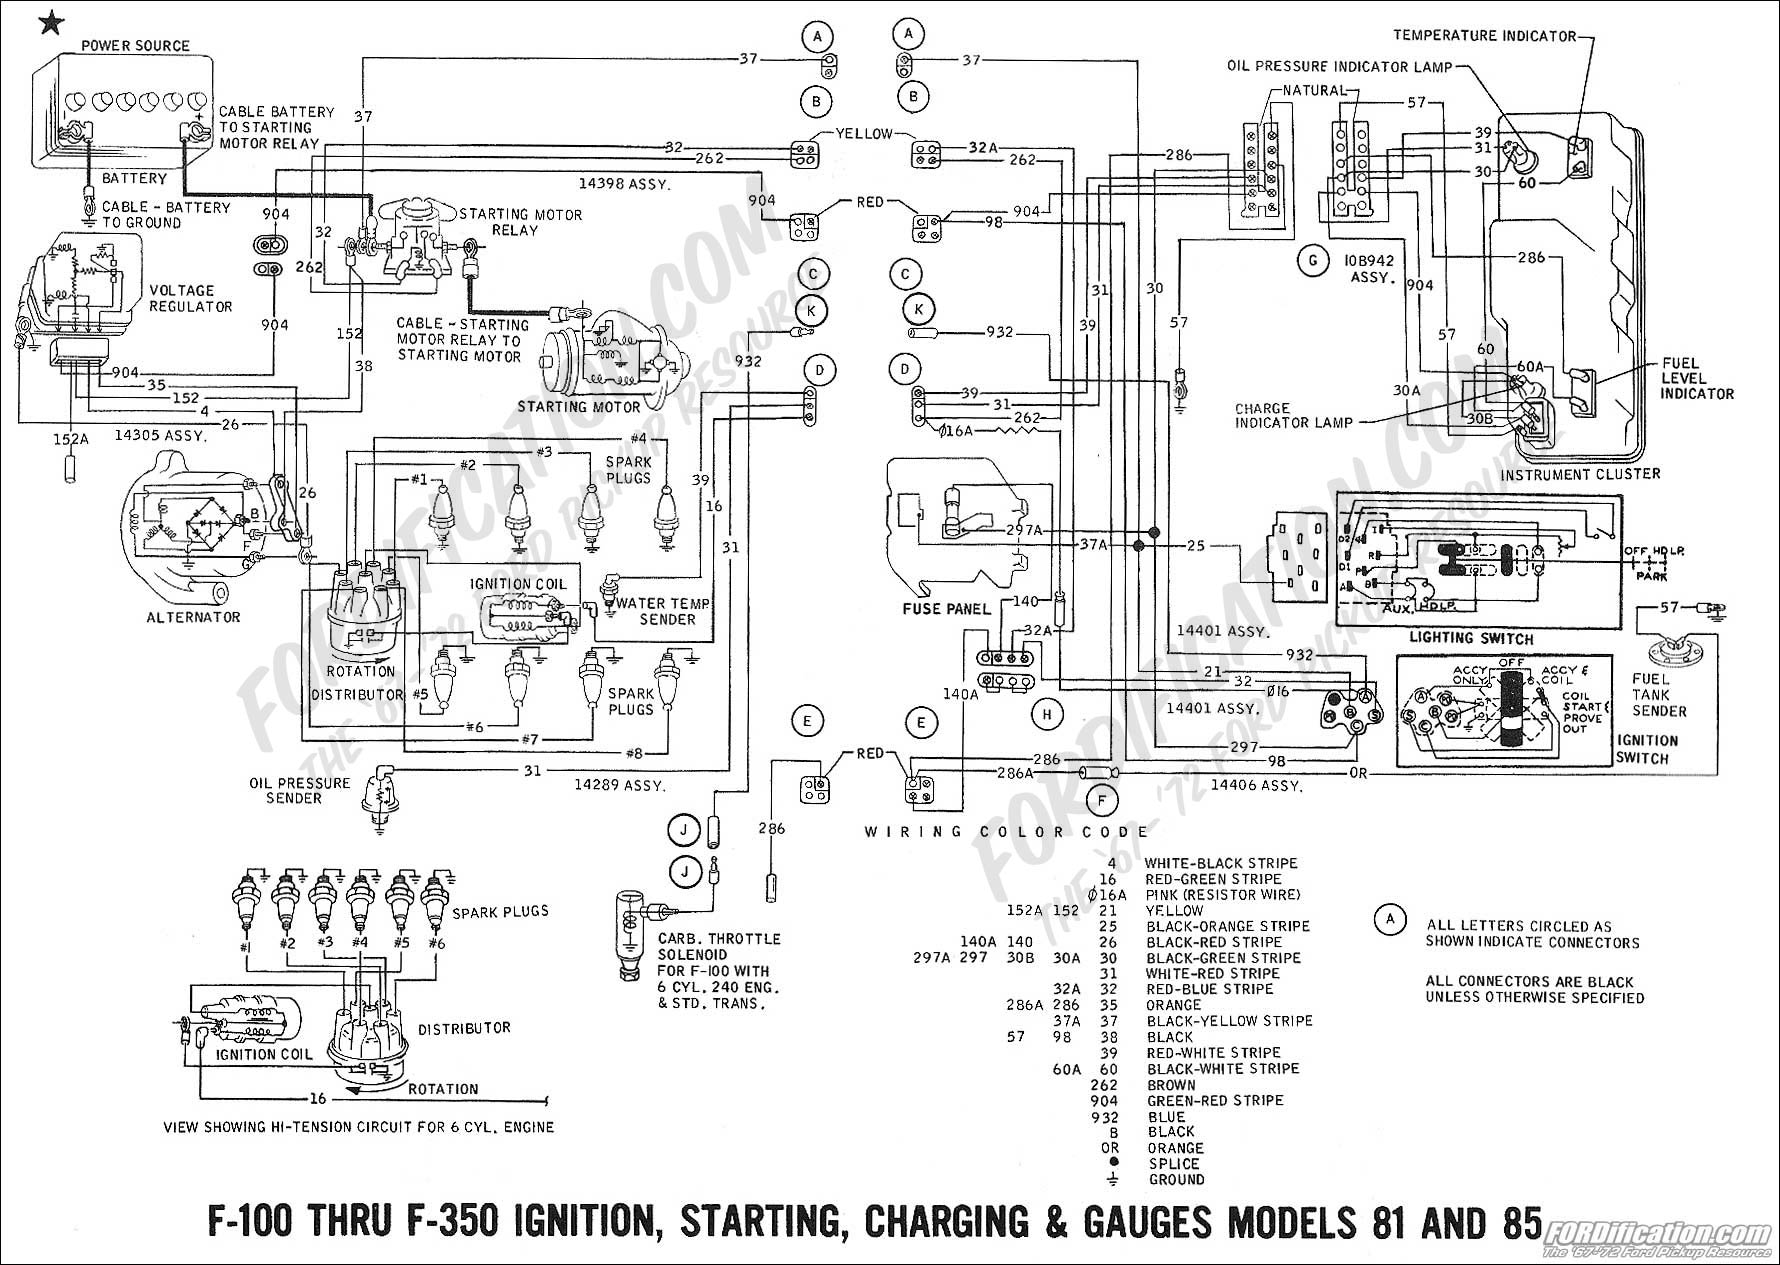 2000 Ford F 250 Fuse Box Diagram Trusted Wiring 2002 Sel 1968 Diy Enthusiasts Diagrams U2022 F250 73l